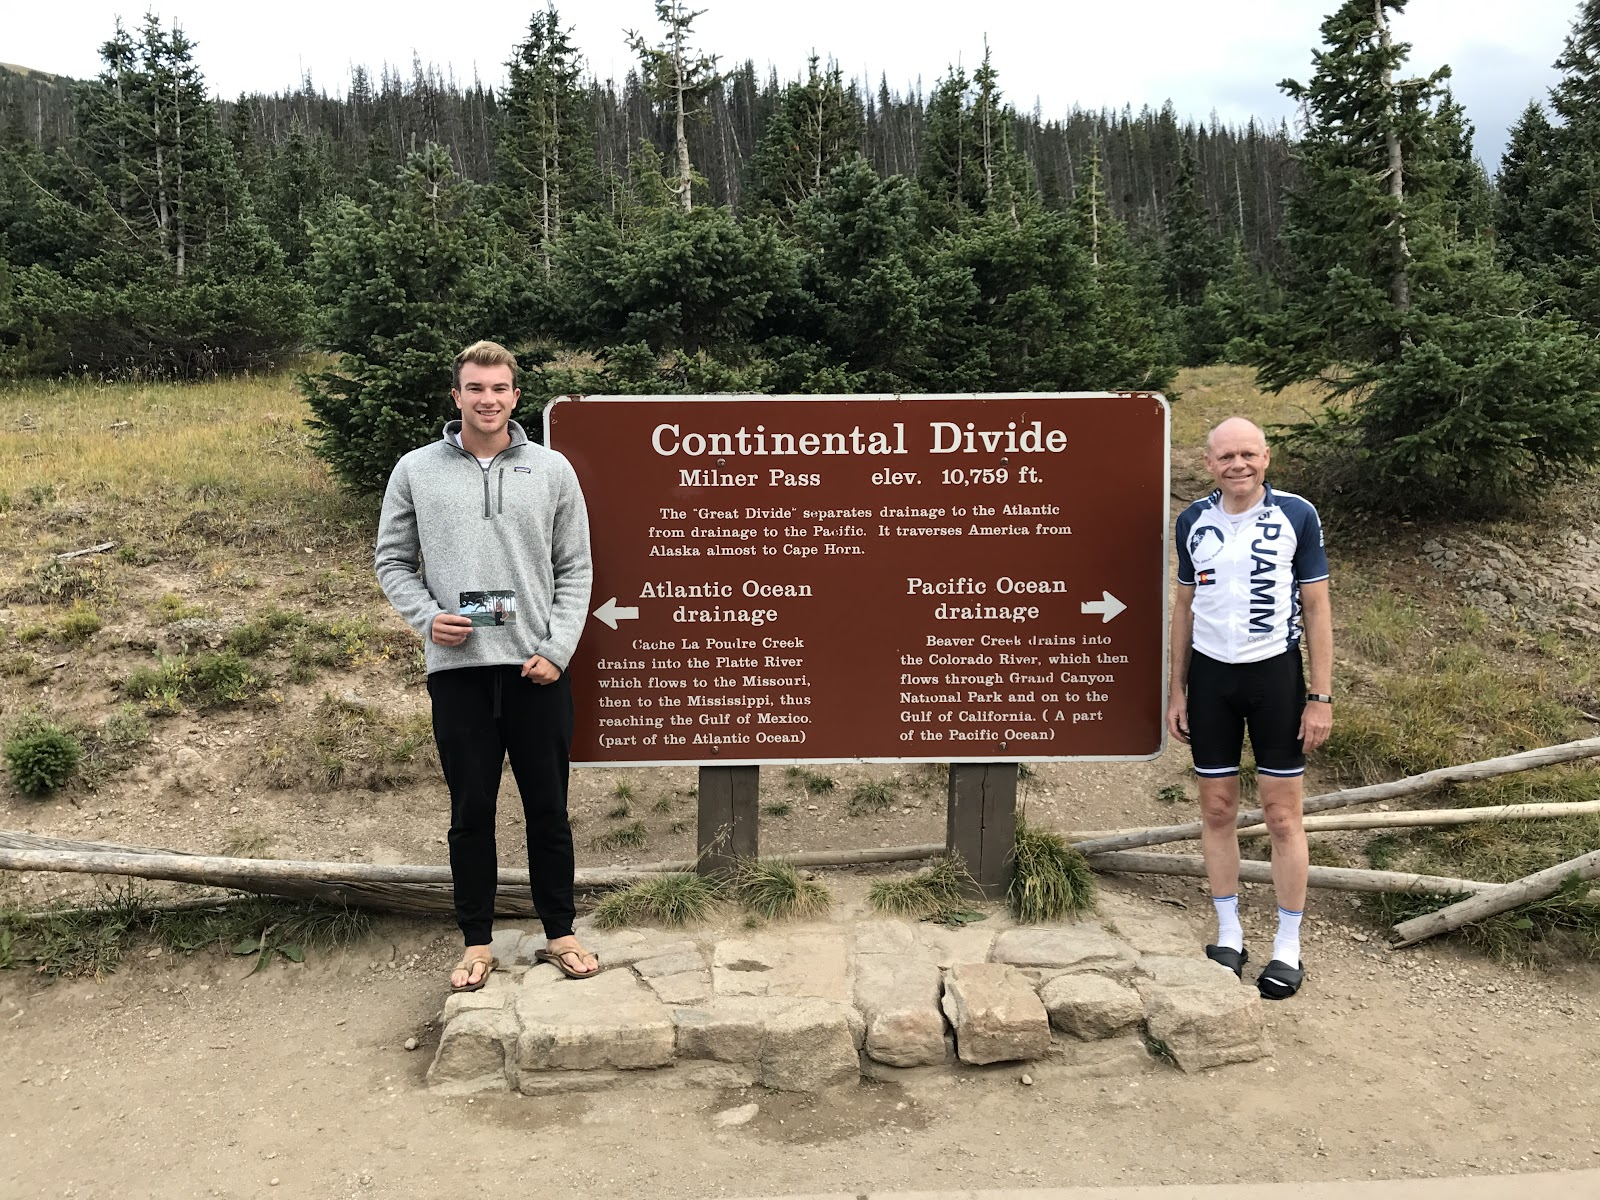 Cyclist at Trail Ridge Continental Divide sign.